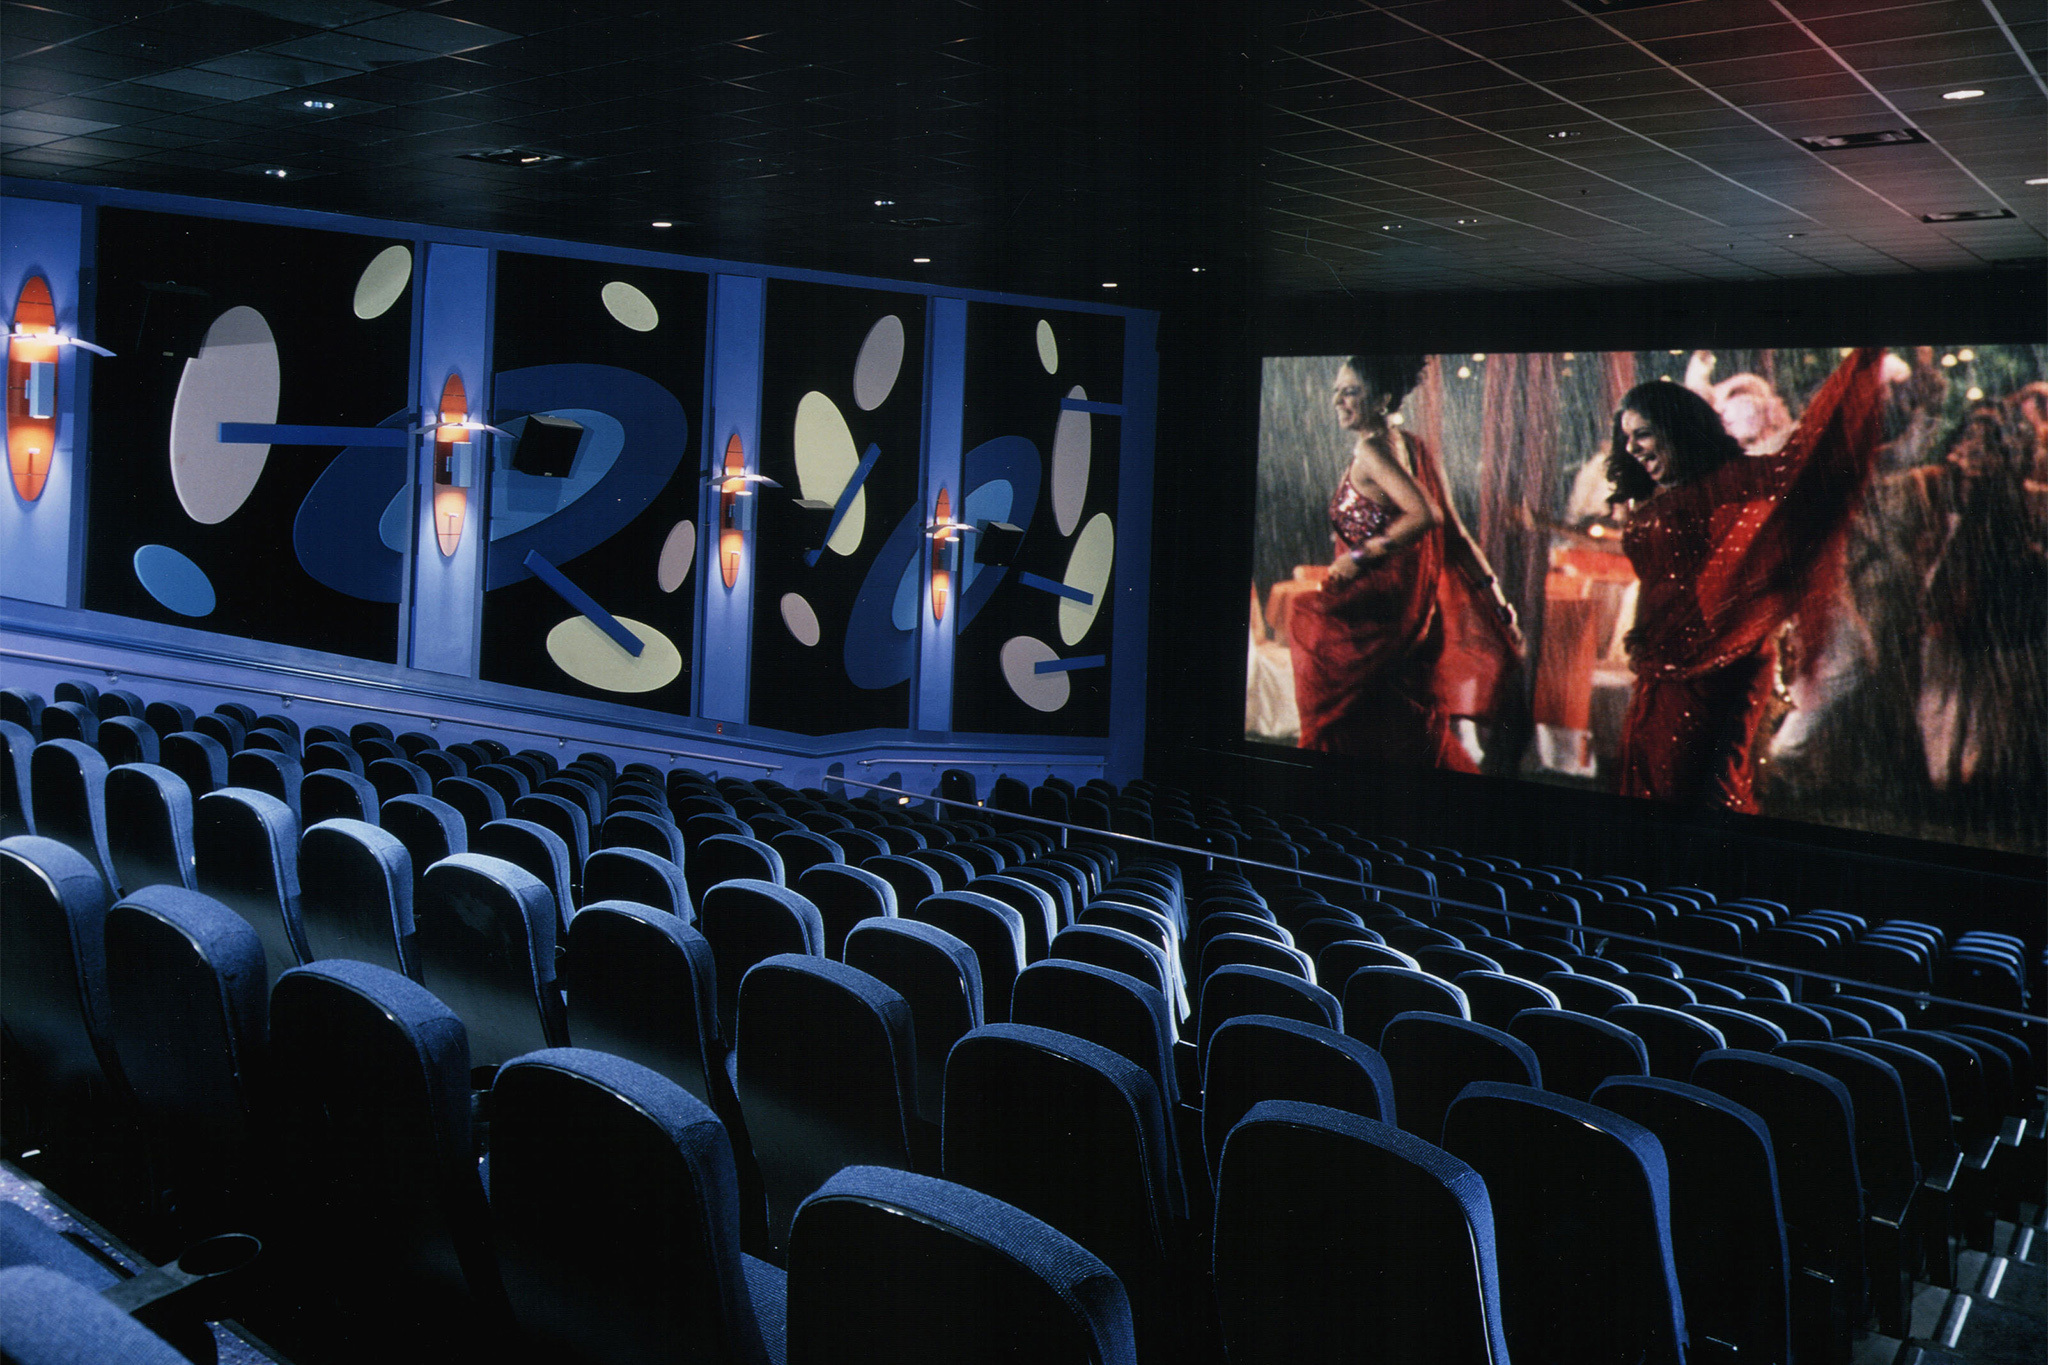 modern cinema is a boon 10 reviews of film streams' dundee theater that the city of omaha now has two arthouse cinemas is a testament to how much the city has grown since i last lived here nearly 20 years ago.